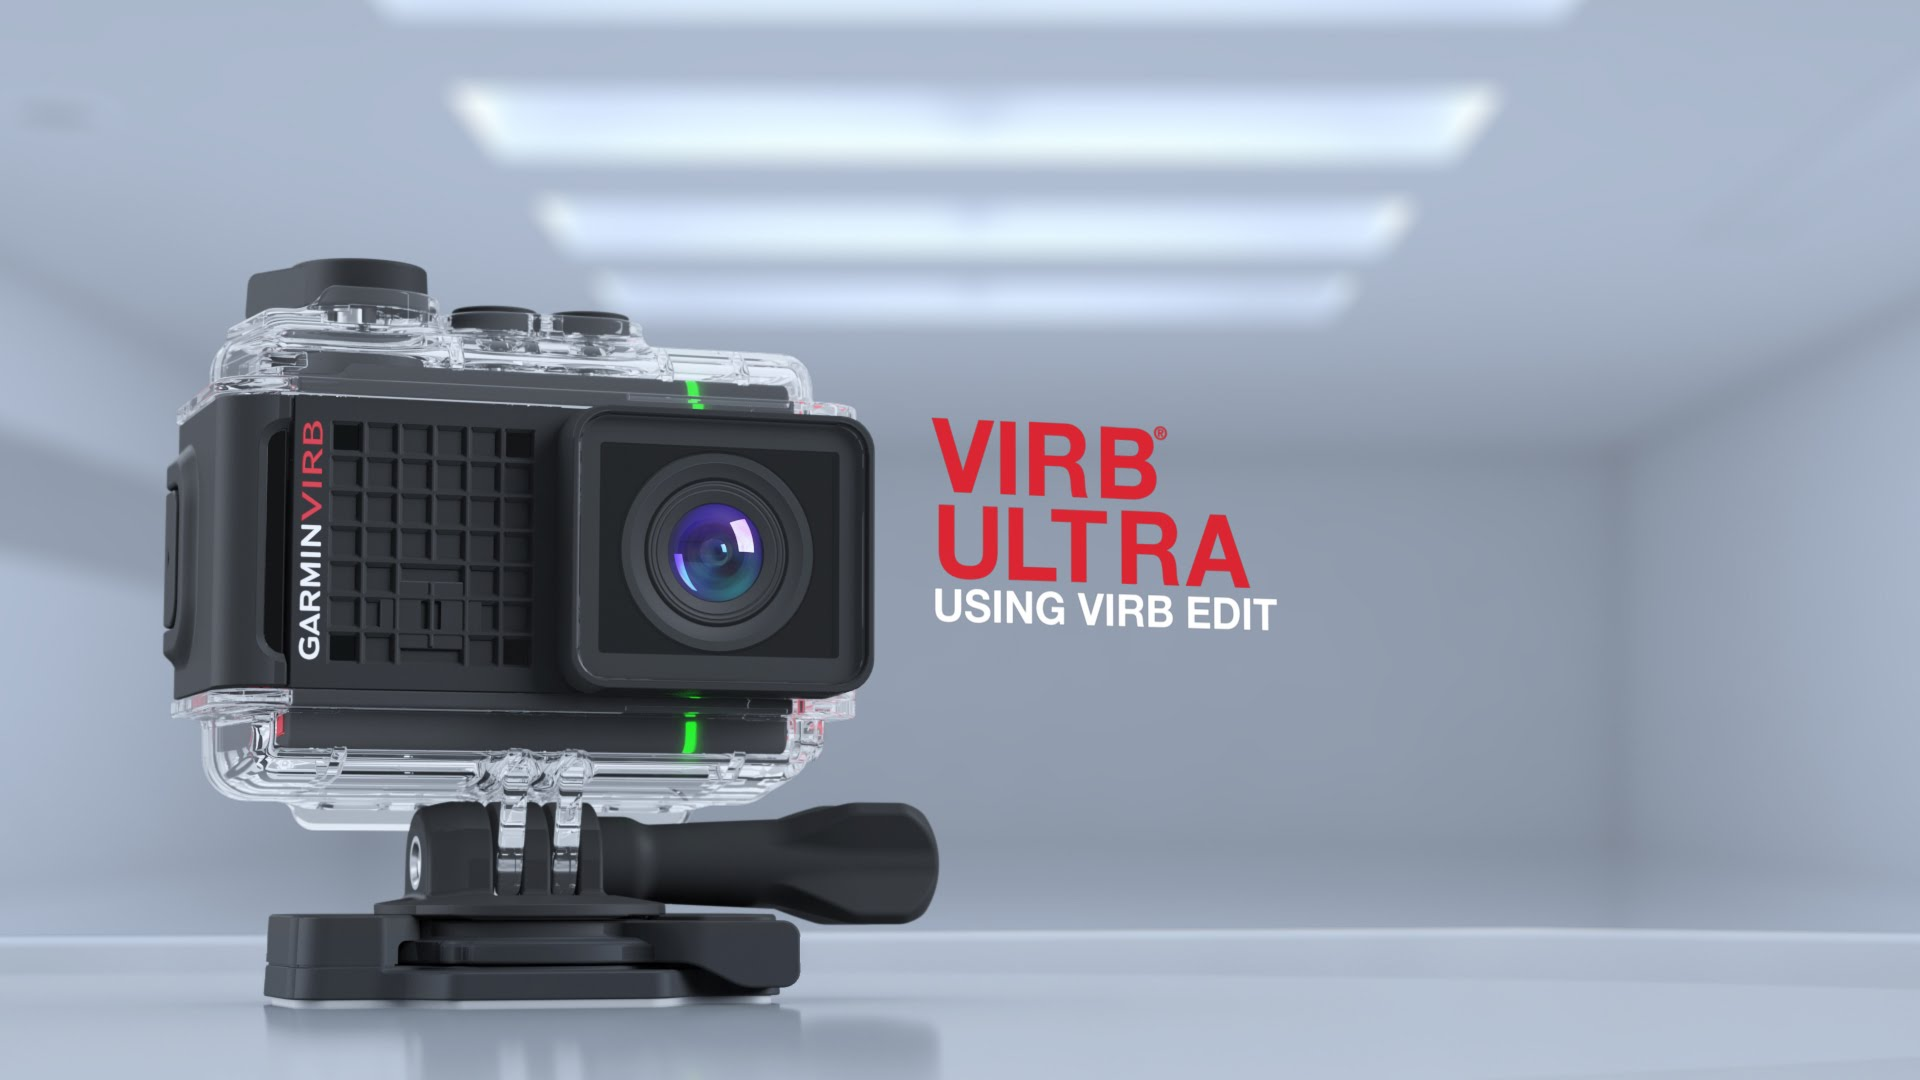 VIRB Ultra: Using VIRB Edit